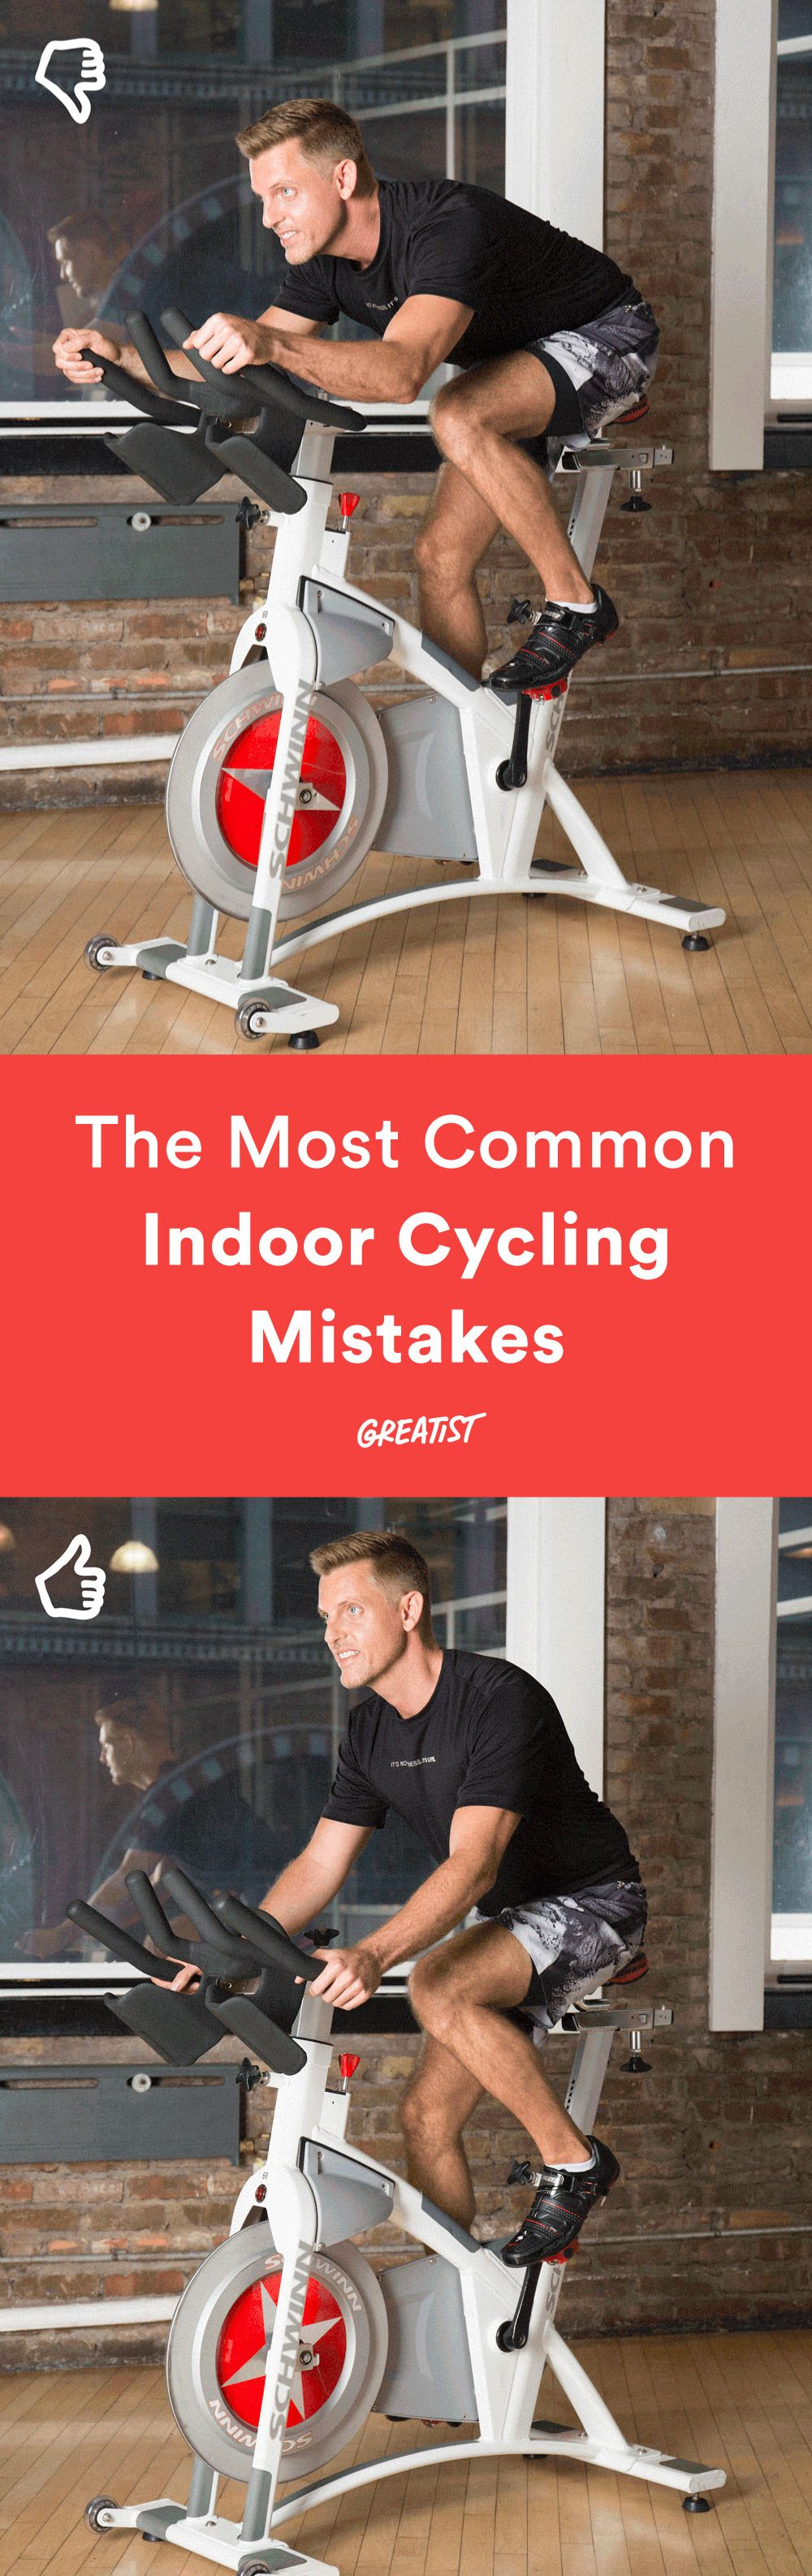 The Most Common Indoor Cycling Mistakes | Pinterest